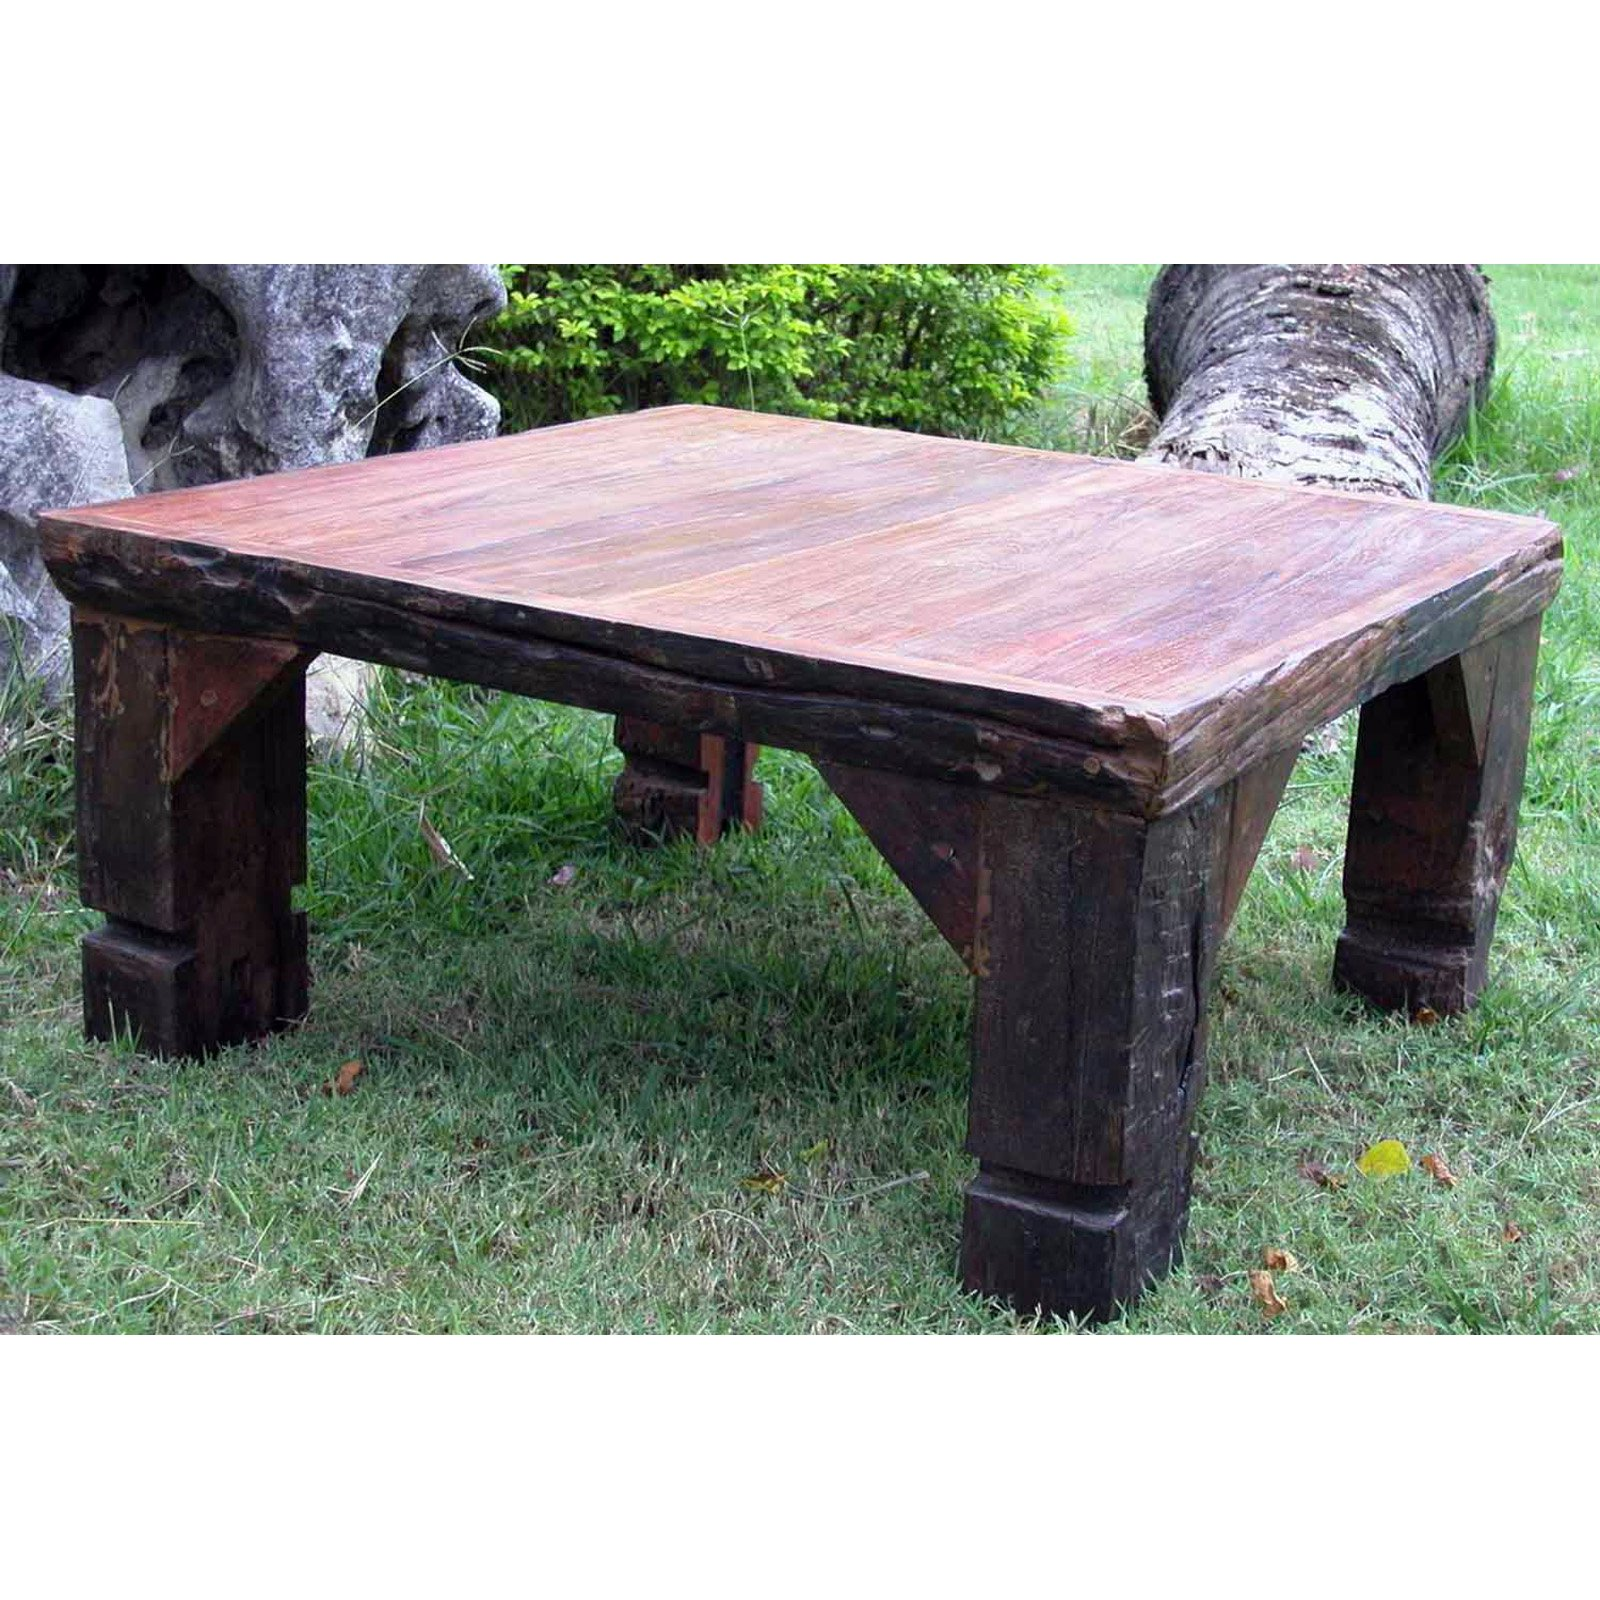 Groovystuff Ranch House Square Teak Wood Coffee Table